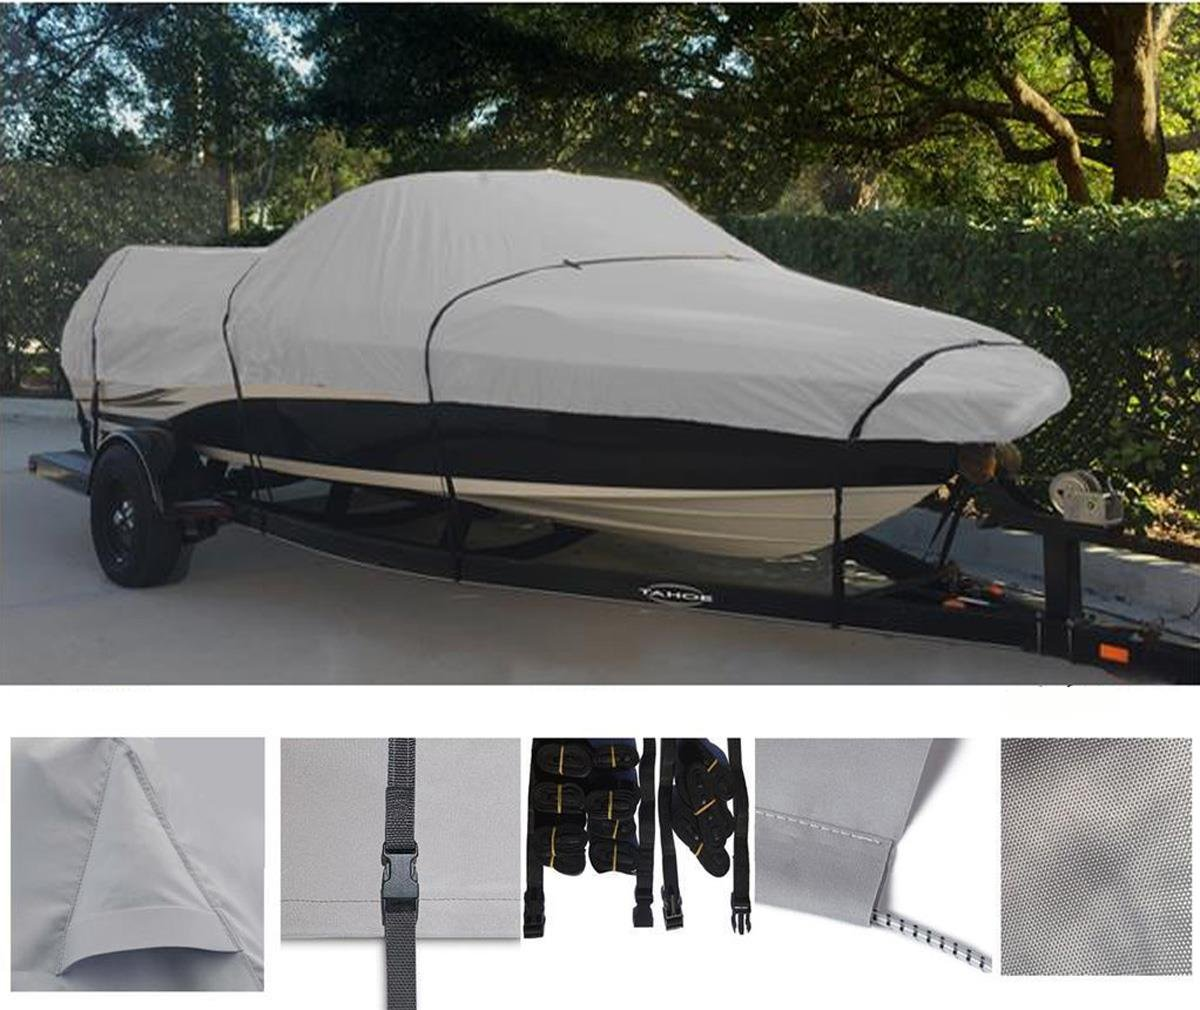 GREY, STORAGE, TRAVEL, MOORING BOAT COVER FOR Bayliner 175 BR 2001 2002  2003 2004 2005 2006-2012